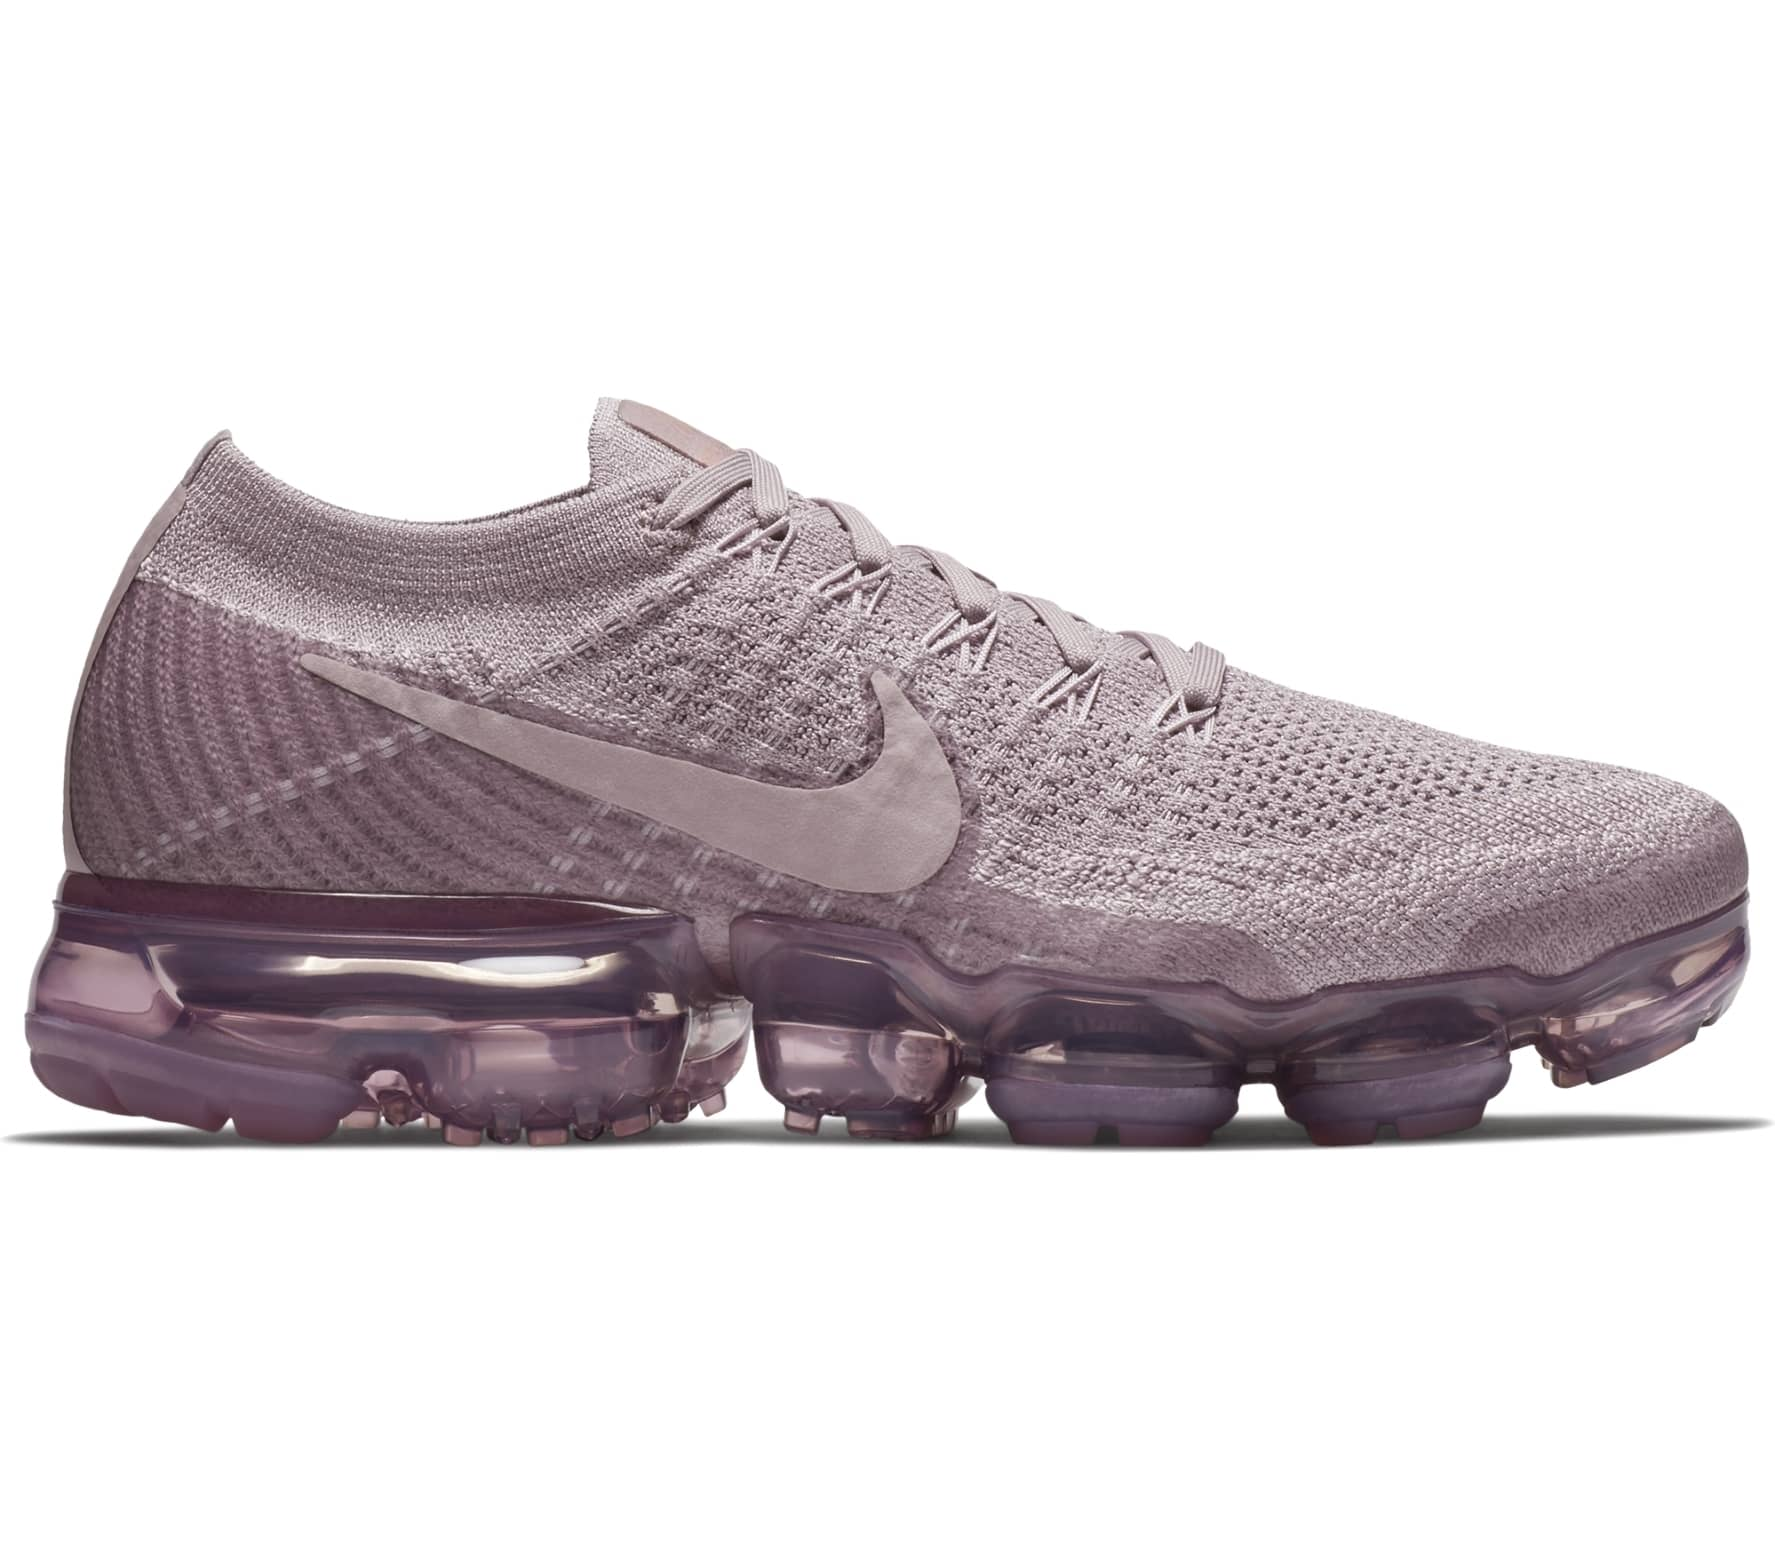 a9ffe115bc57 Nike - Air VaporMax Flyknit women s running shoes (purple) - buy it ...